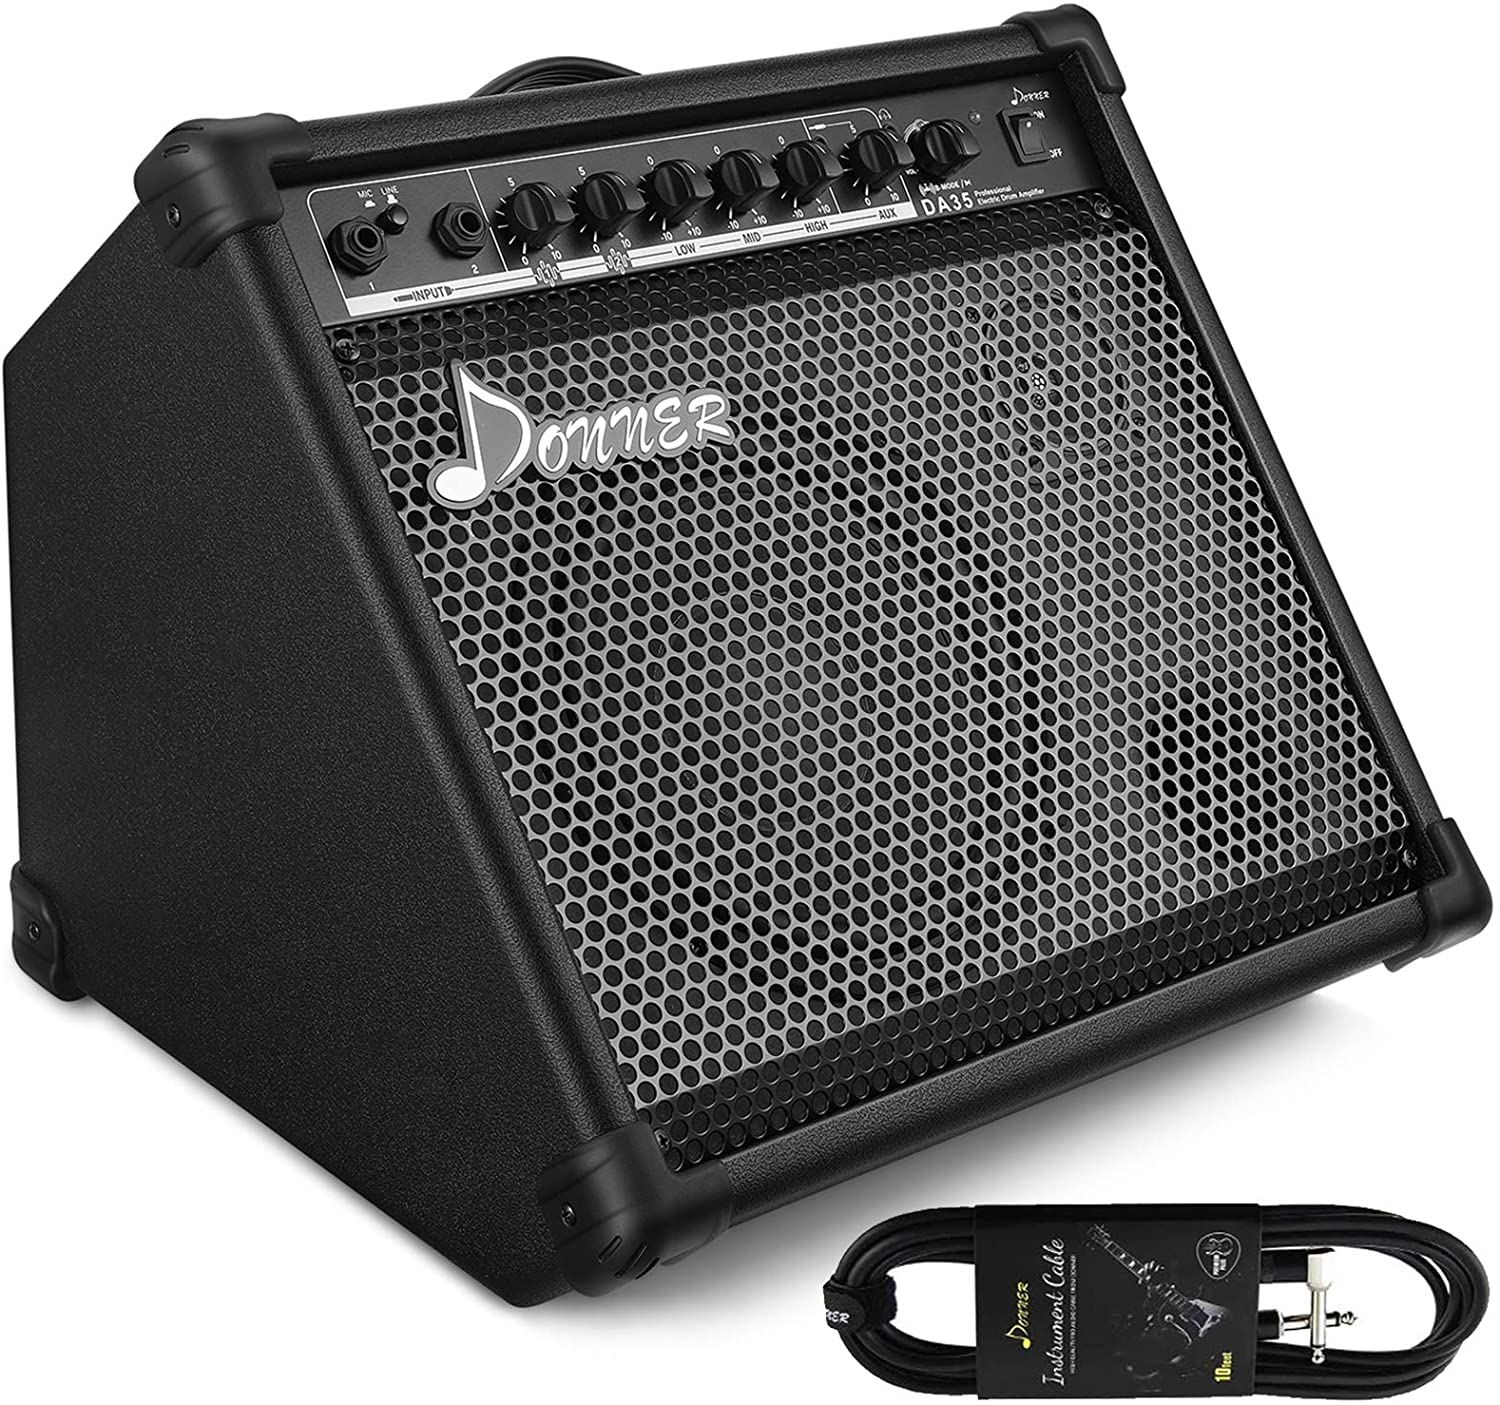 Donner DA-35 AMP 35-Watt Electronic Drum Amplifier Keyboard Amplifier with Aux in and Wireless audio connection, Drum/Keyboard/MIC 3 in 1 Amplifier with 3-Band EQ and DI OUT